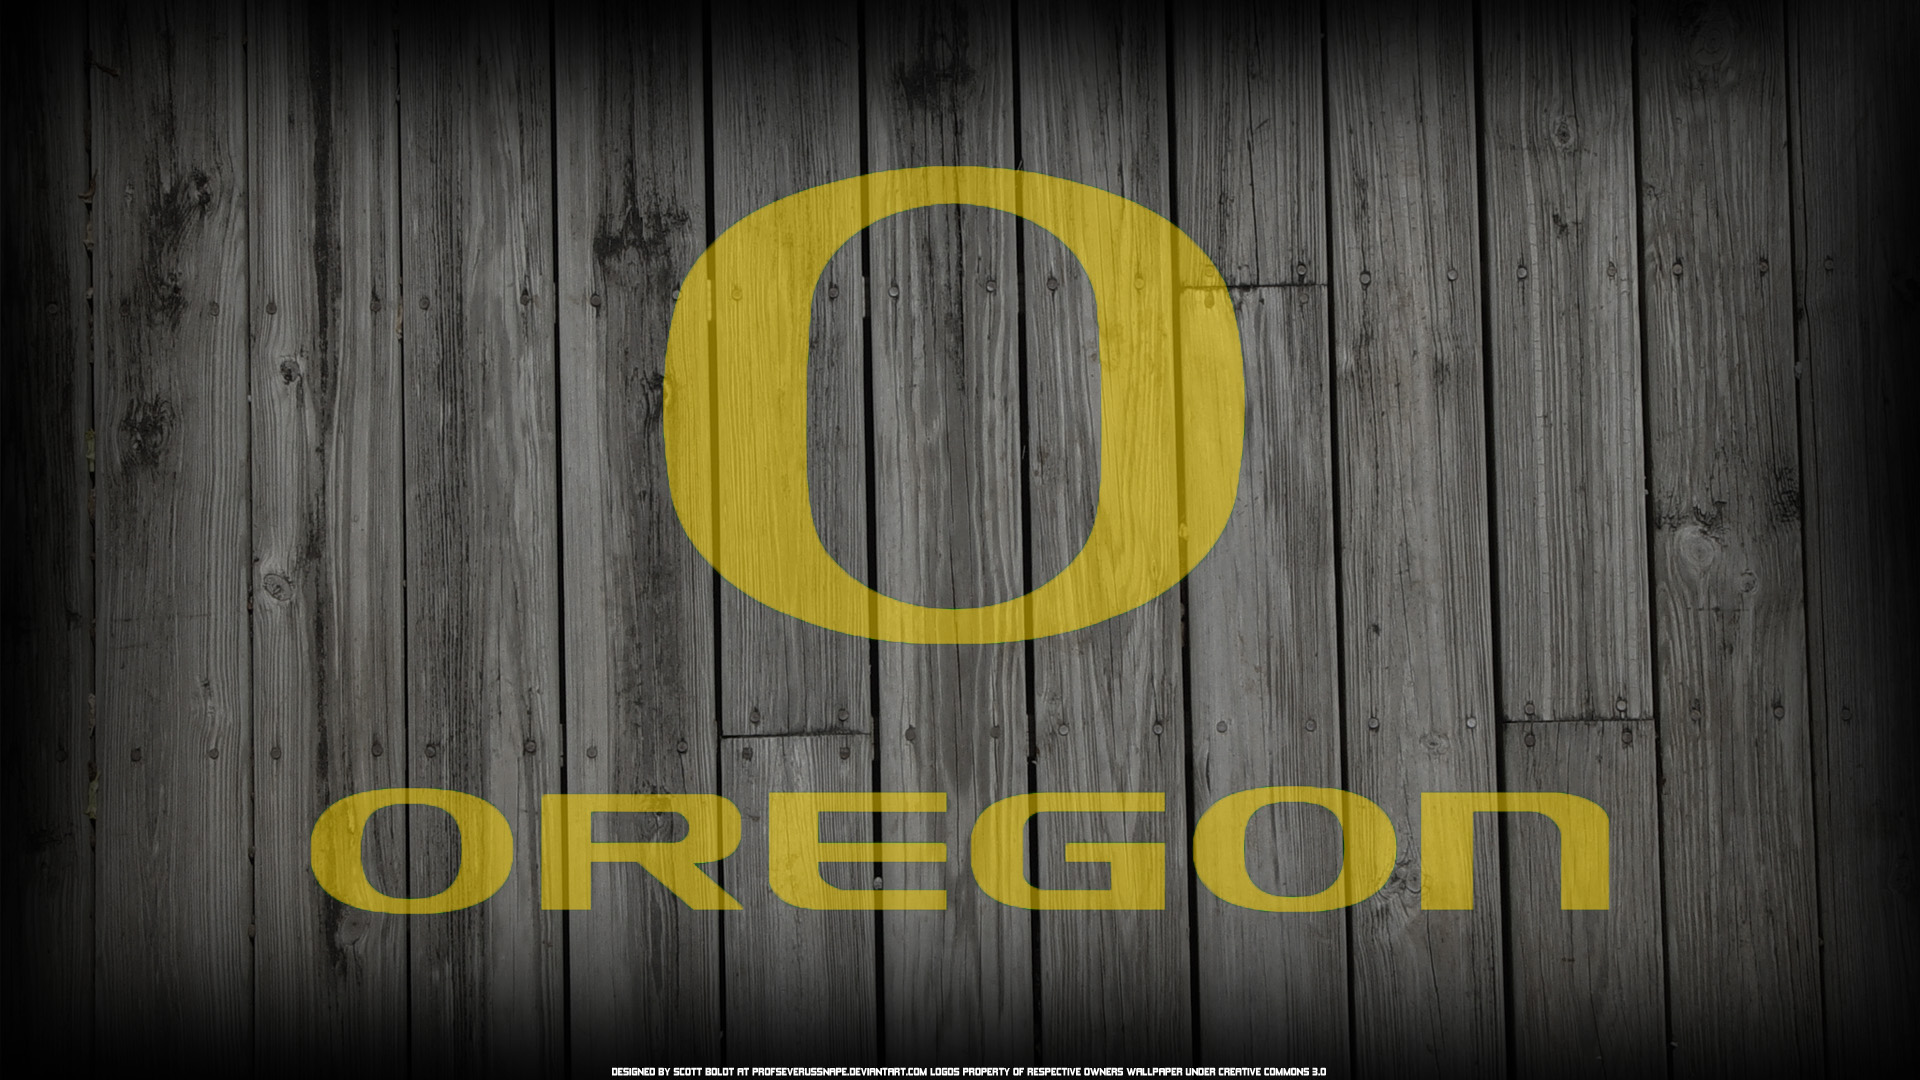 Oregon Logo on Wood Fence Background by ProfSeverusSnape 1920 x 1920x1080